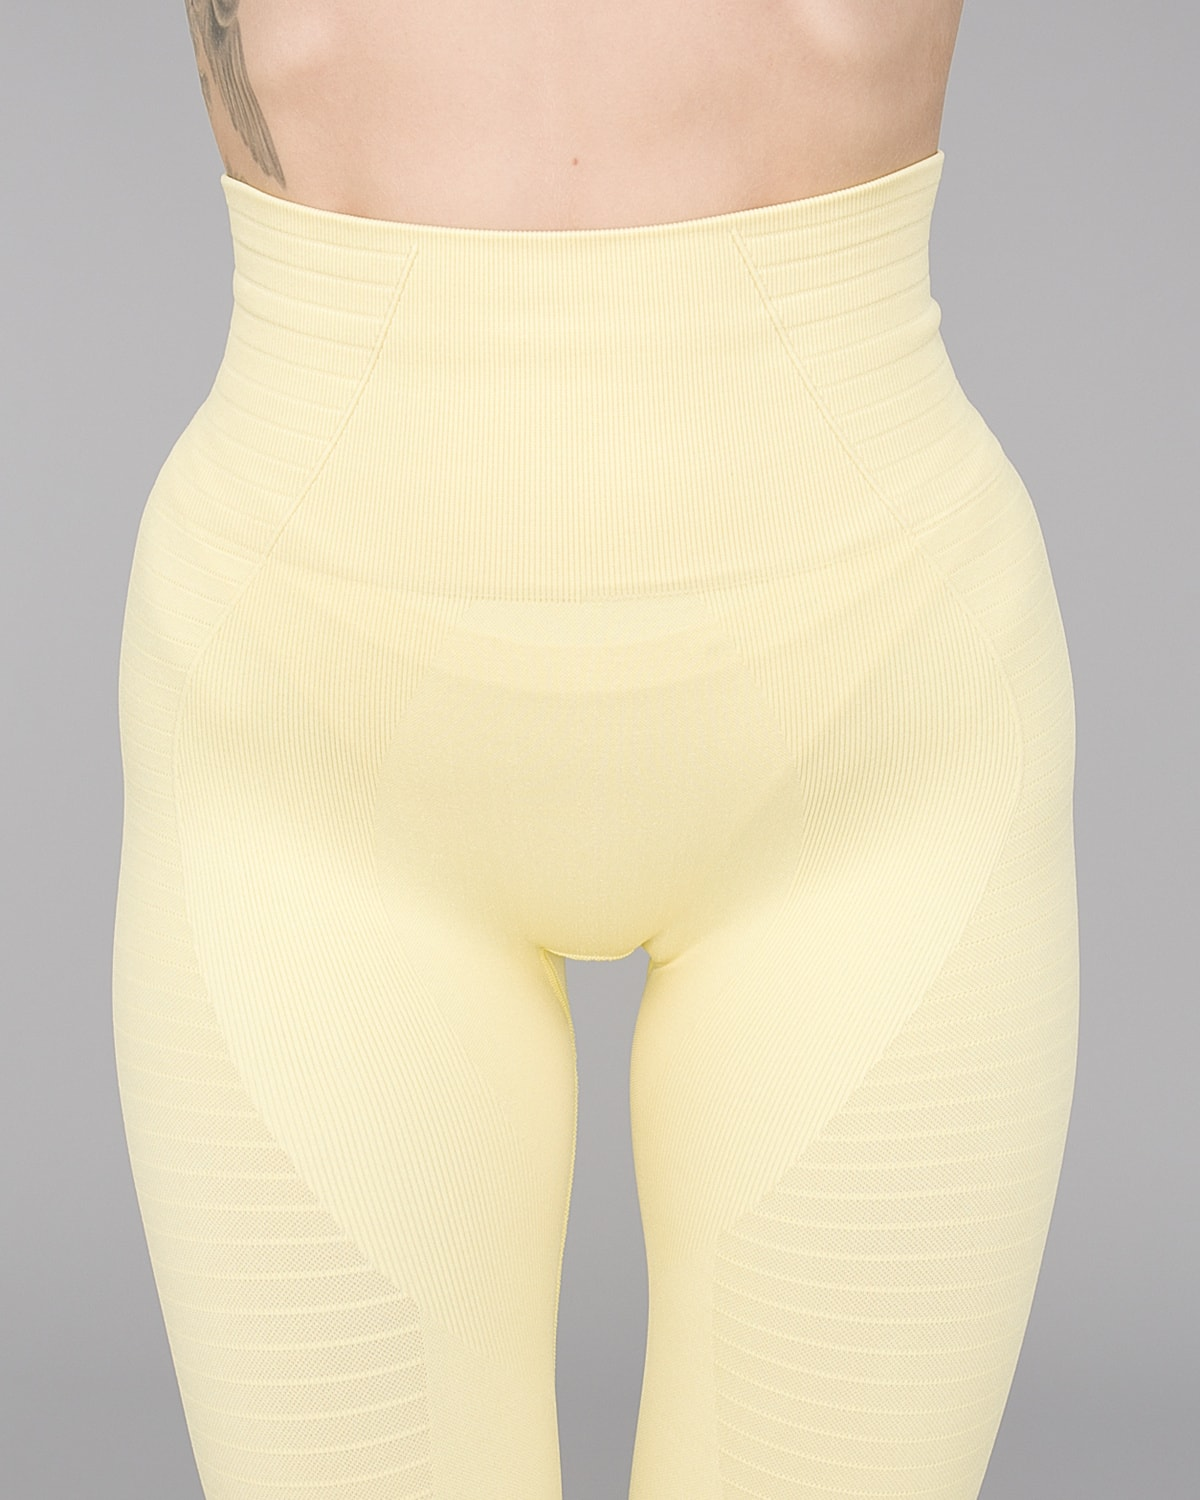 Jerf Gela 2.0 Tights Yellow Pastel15